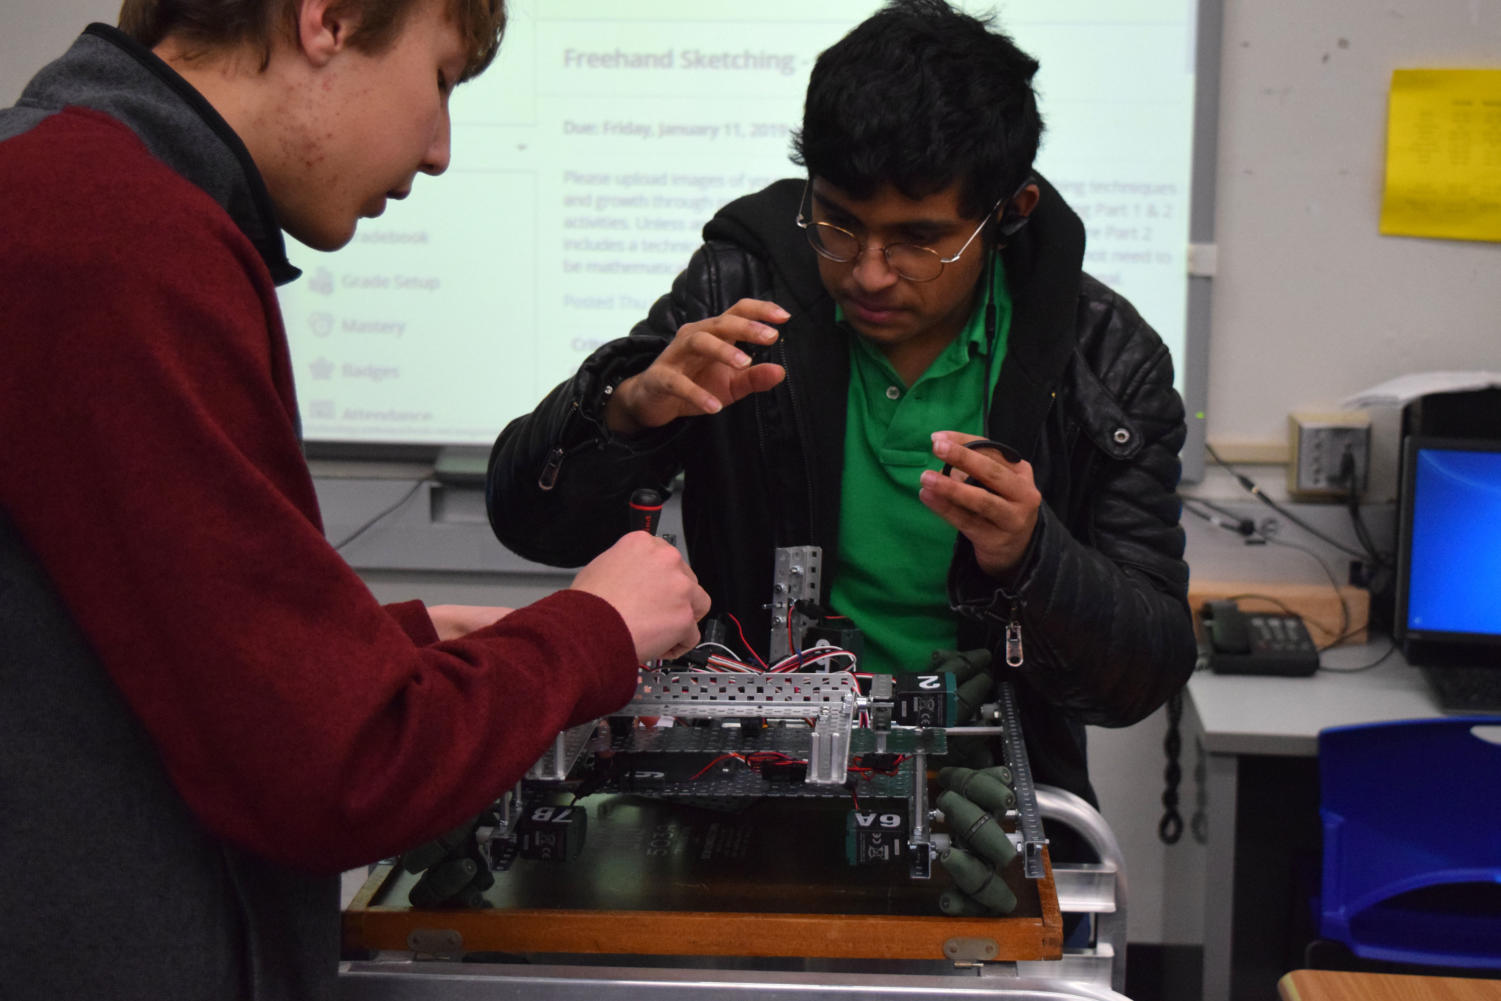 """Attending a meeting after school, sophomore Kunal Addagarla makes adjustments to their robot. Twisted Metal was not able to qualify for the 2019 Missouri State VEX Championship, but they will be newcomers at the CREATE US Open Robotics Championship displaying teams from across the U.S. and China. """"I would say teamwork is very important because we have different roles to fulfill,"""